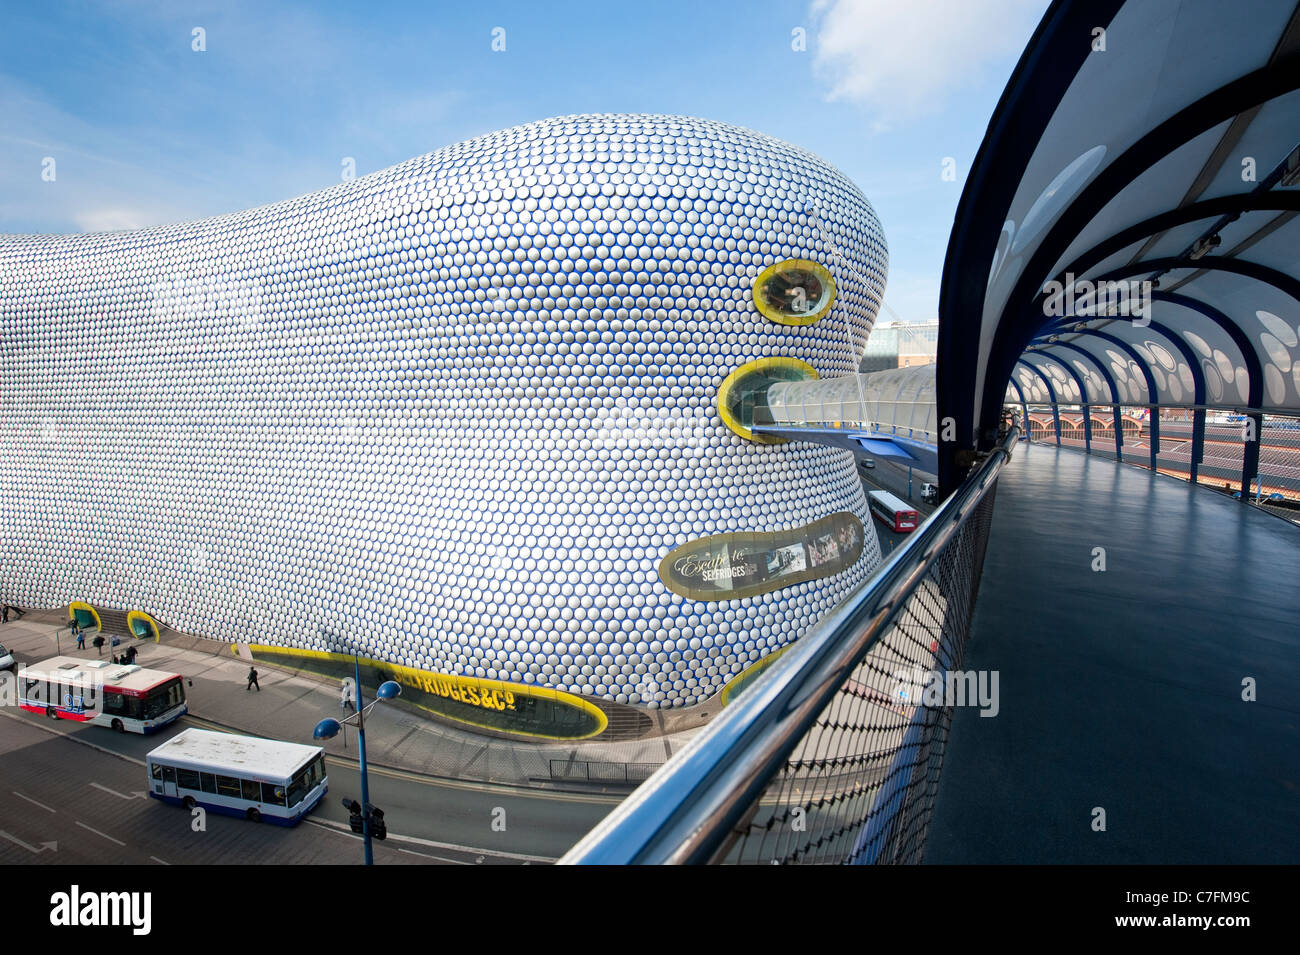 Brücke zum Selfridges in der Stierkampfarena Shopping centre, Birmingham, UK Stockbild